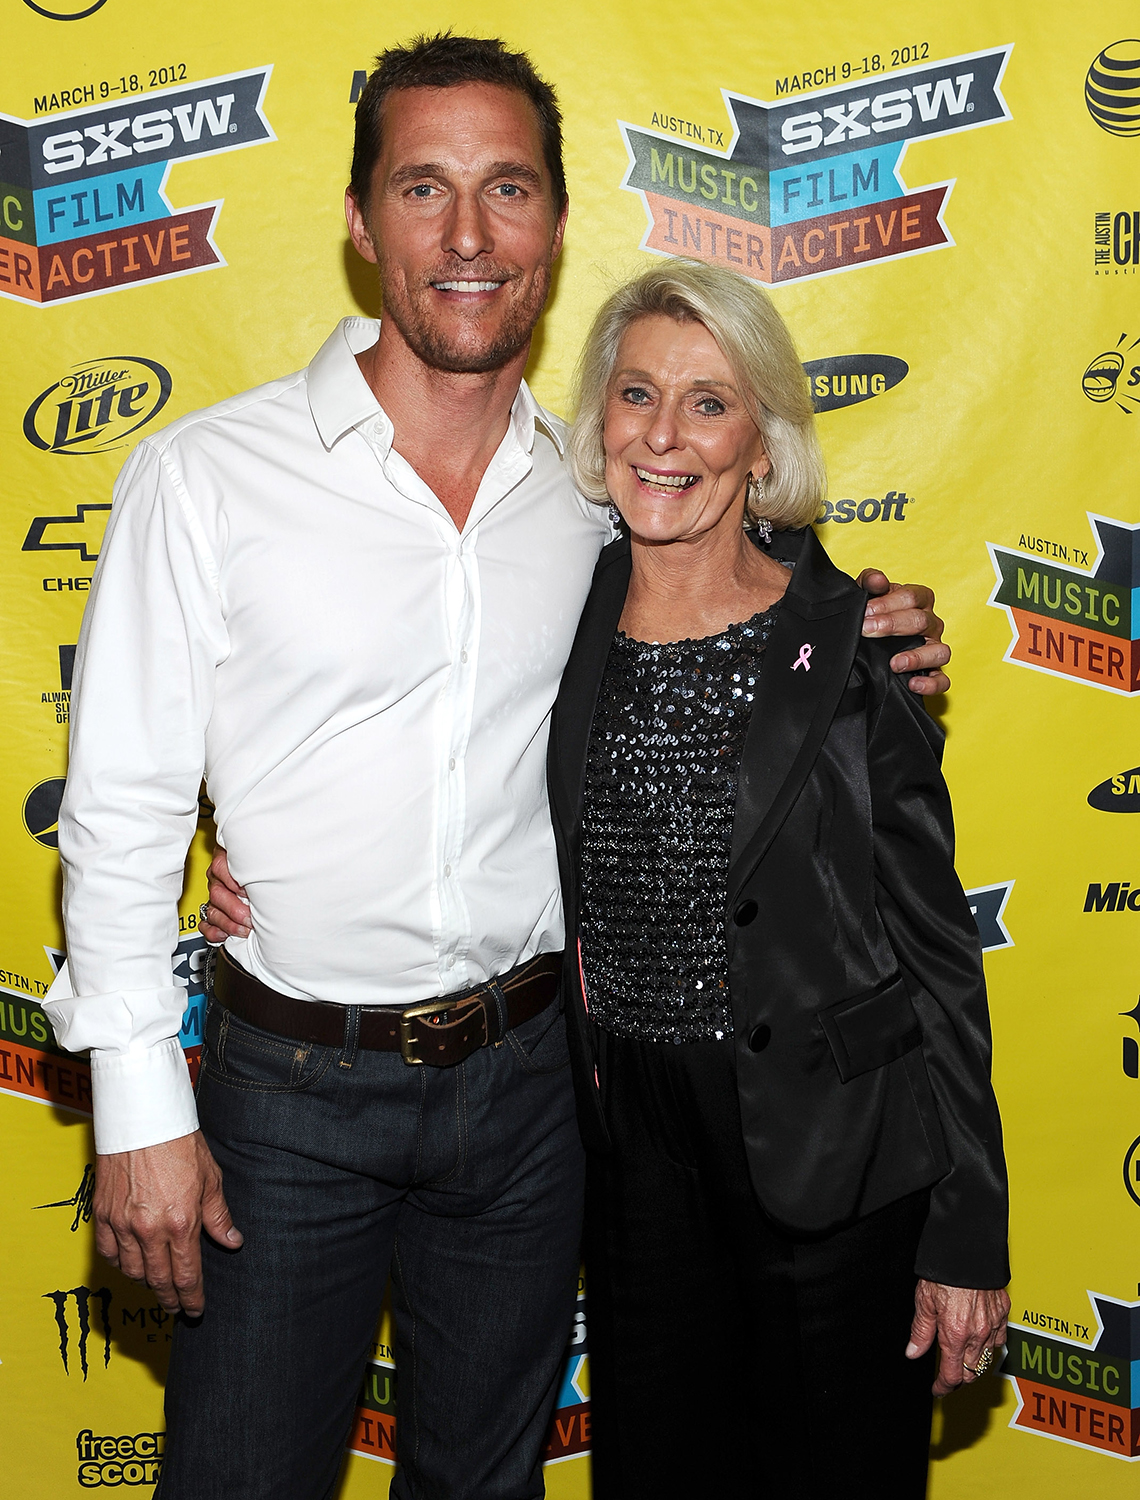 actor matthew mcconaughey and his mom at a film festival